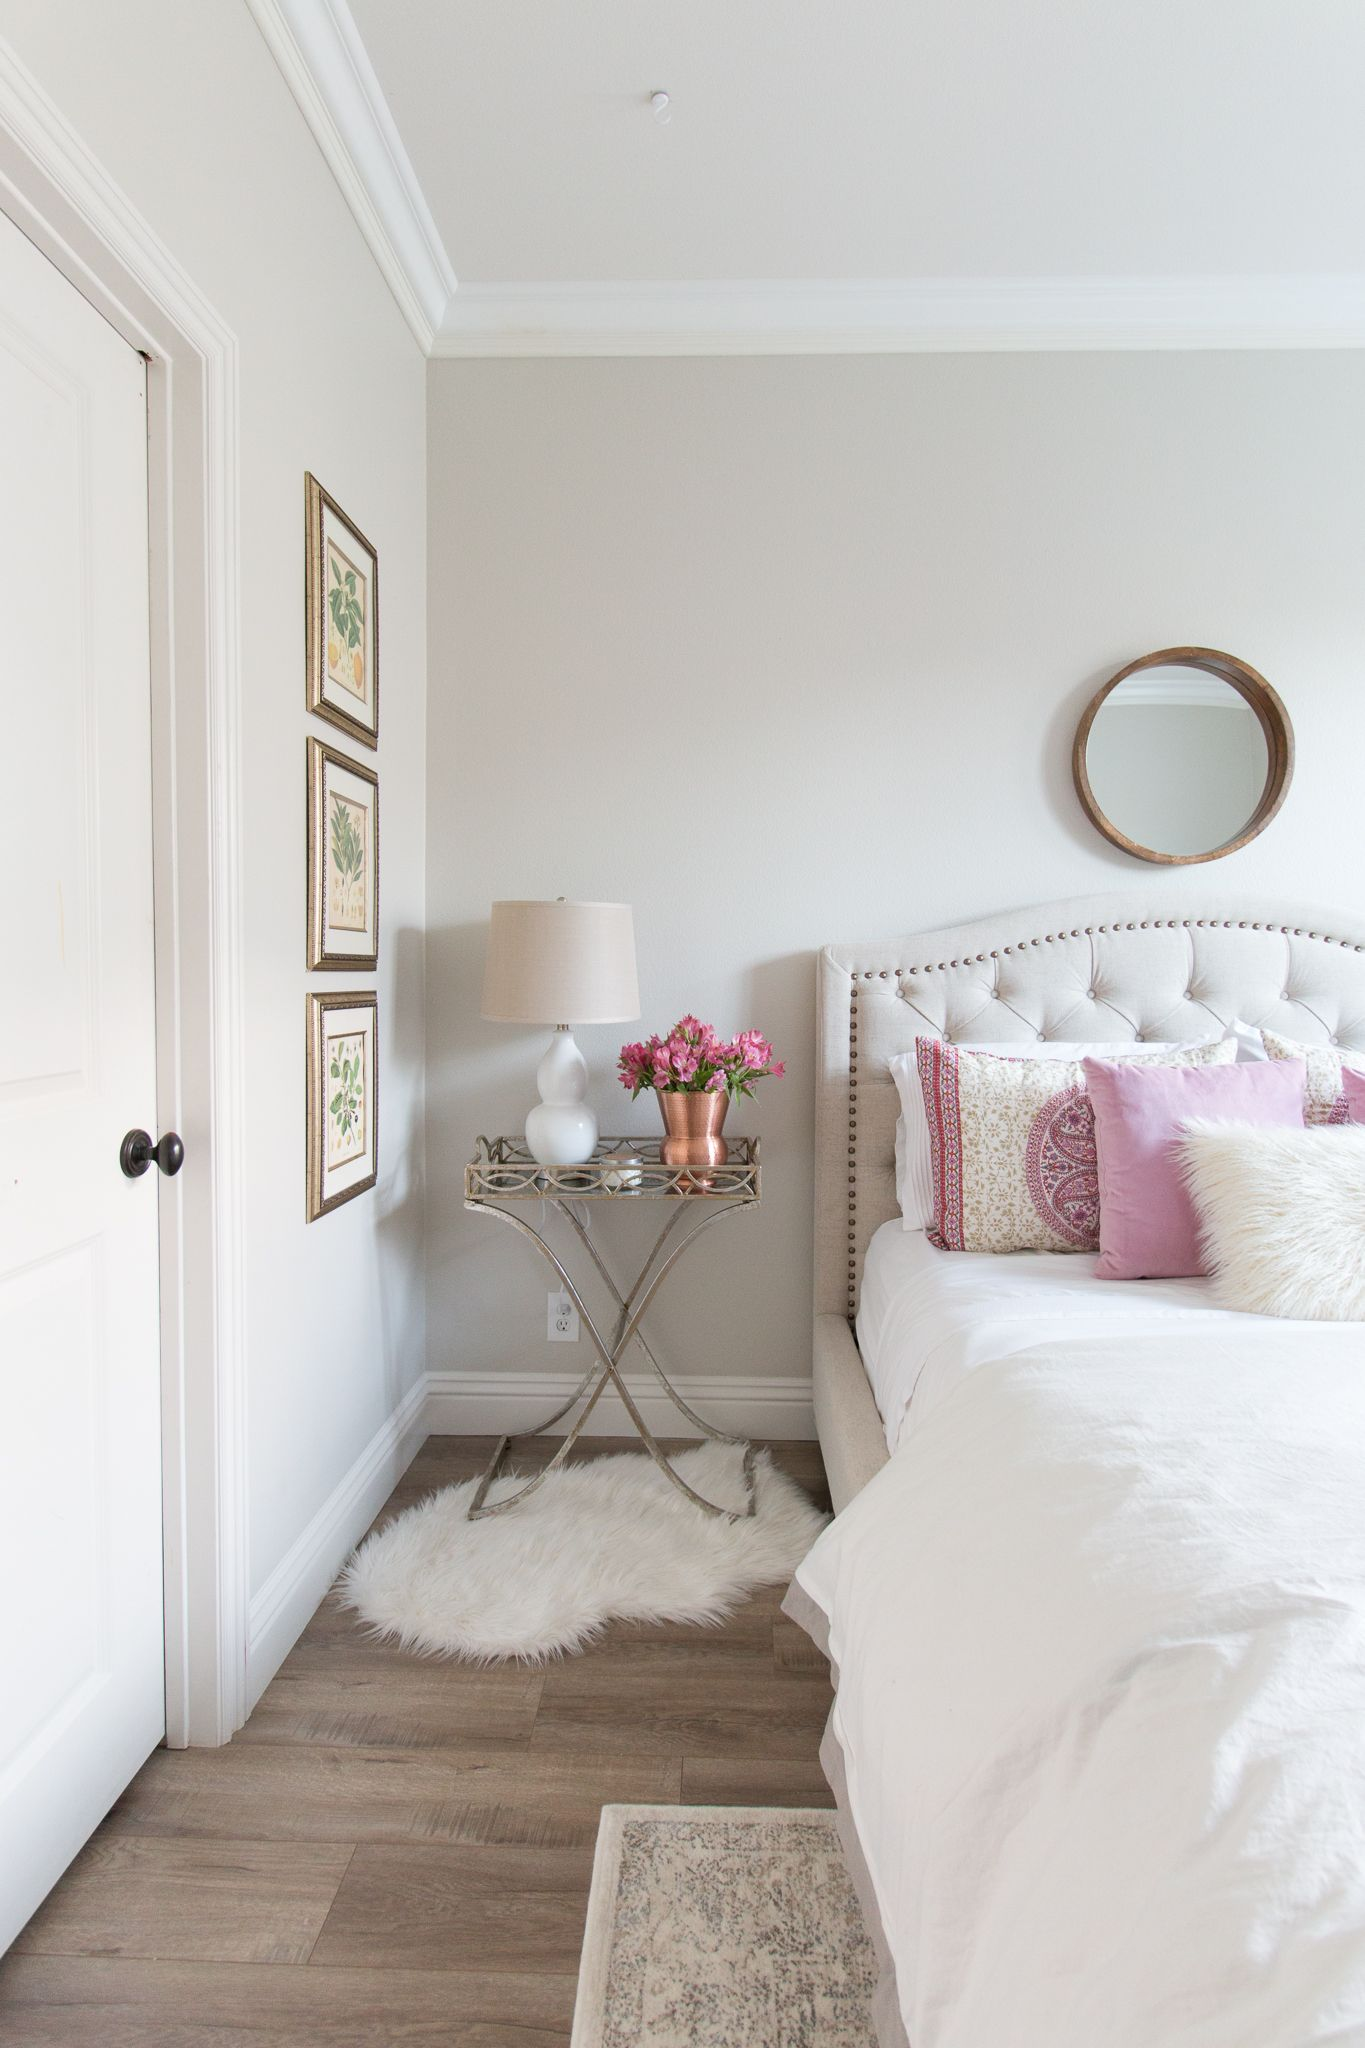 Best Benjamin Moore Colors For Master Bedroom Style Collection some fascinating teenage girl bedroom ideas | pale oak benjamin